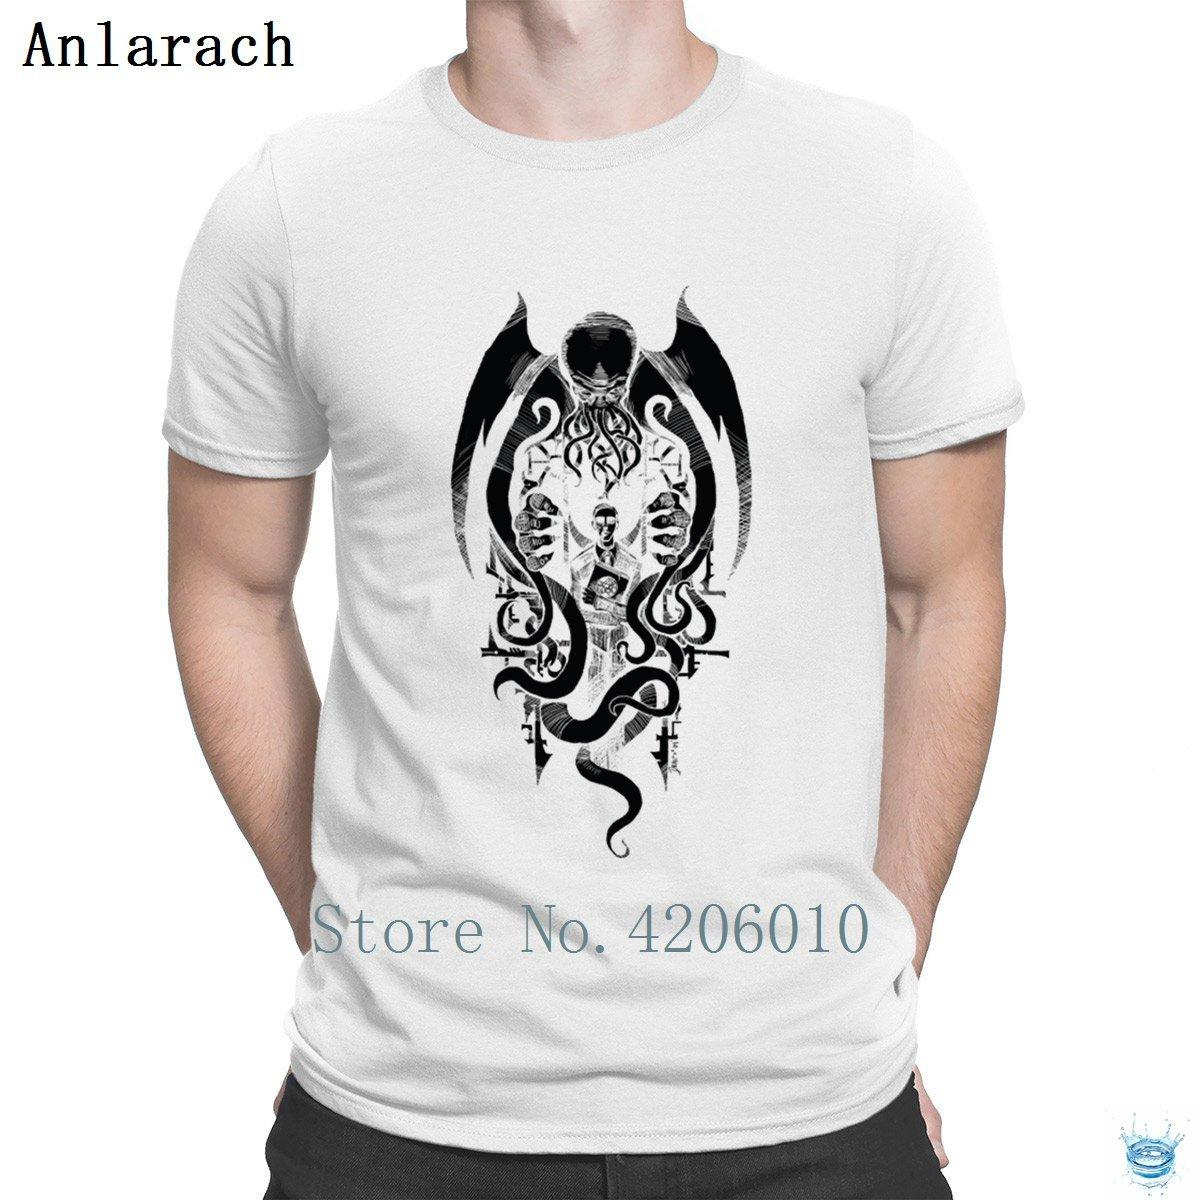 1ba82a7b Weird Fiction T Shirts Spring Tops Customize T Shirt For Men Websites Round  Neck Humor Anlarach Cool Design T Shirts Casual Shirts From Dzuprightc, ...